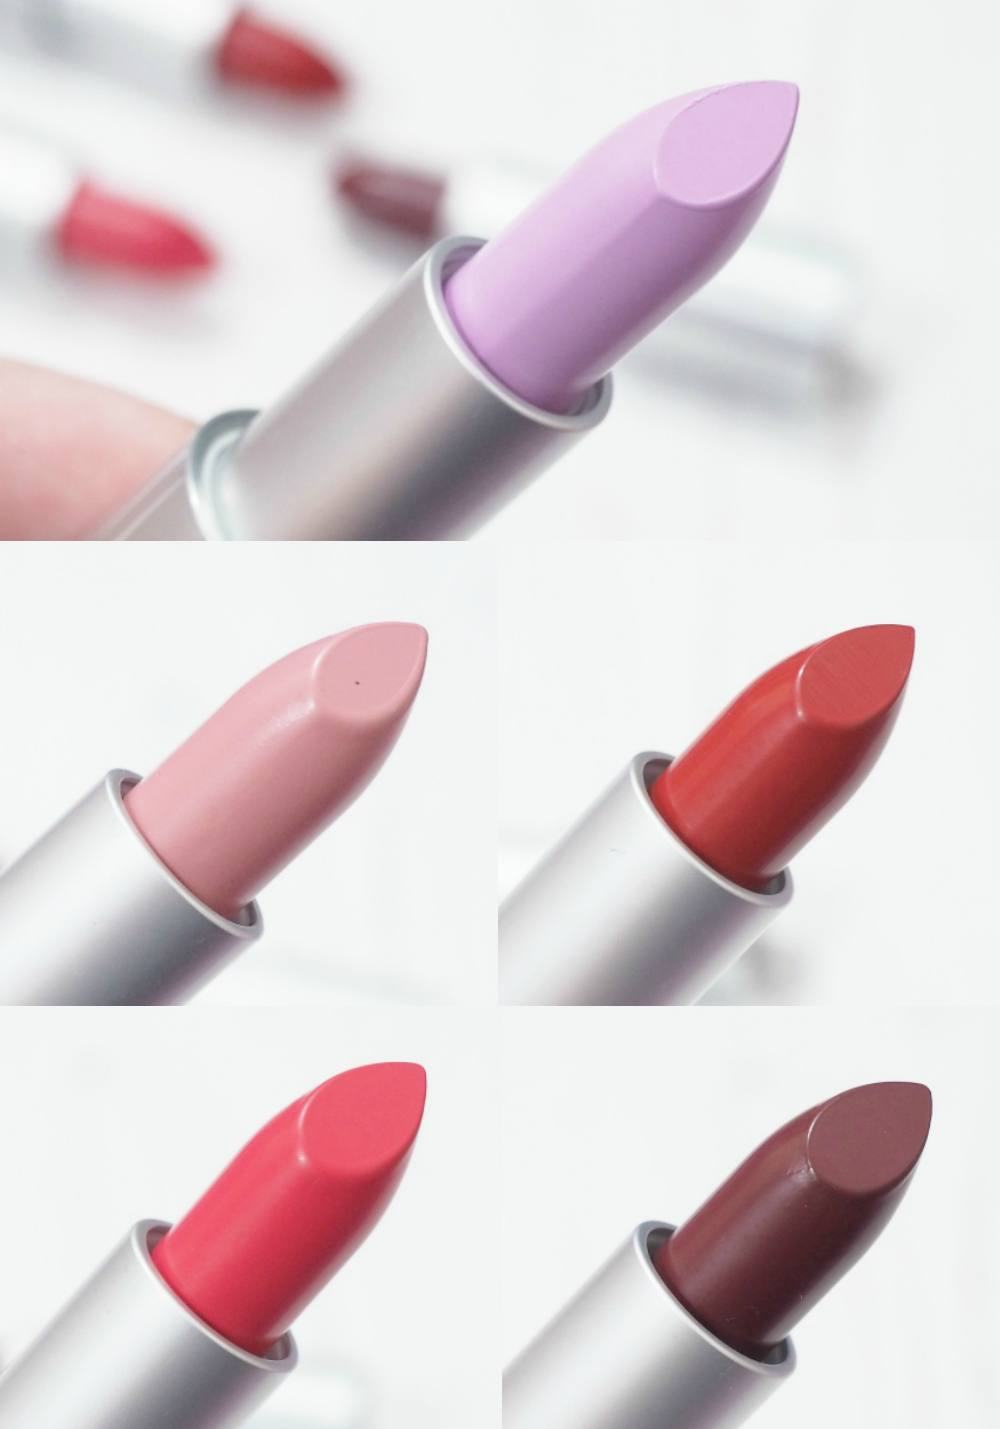 Feral Cosmetics Liquid Matte Lipsticks and Ultra Satin Lipsticks